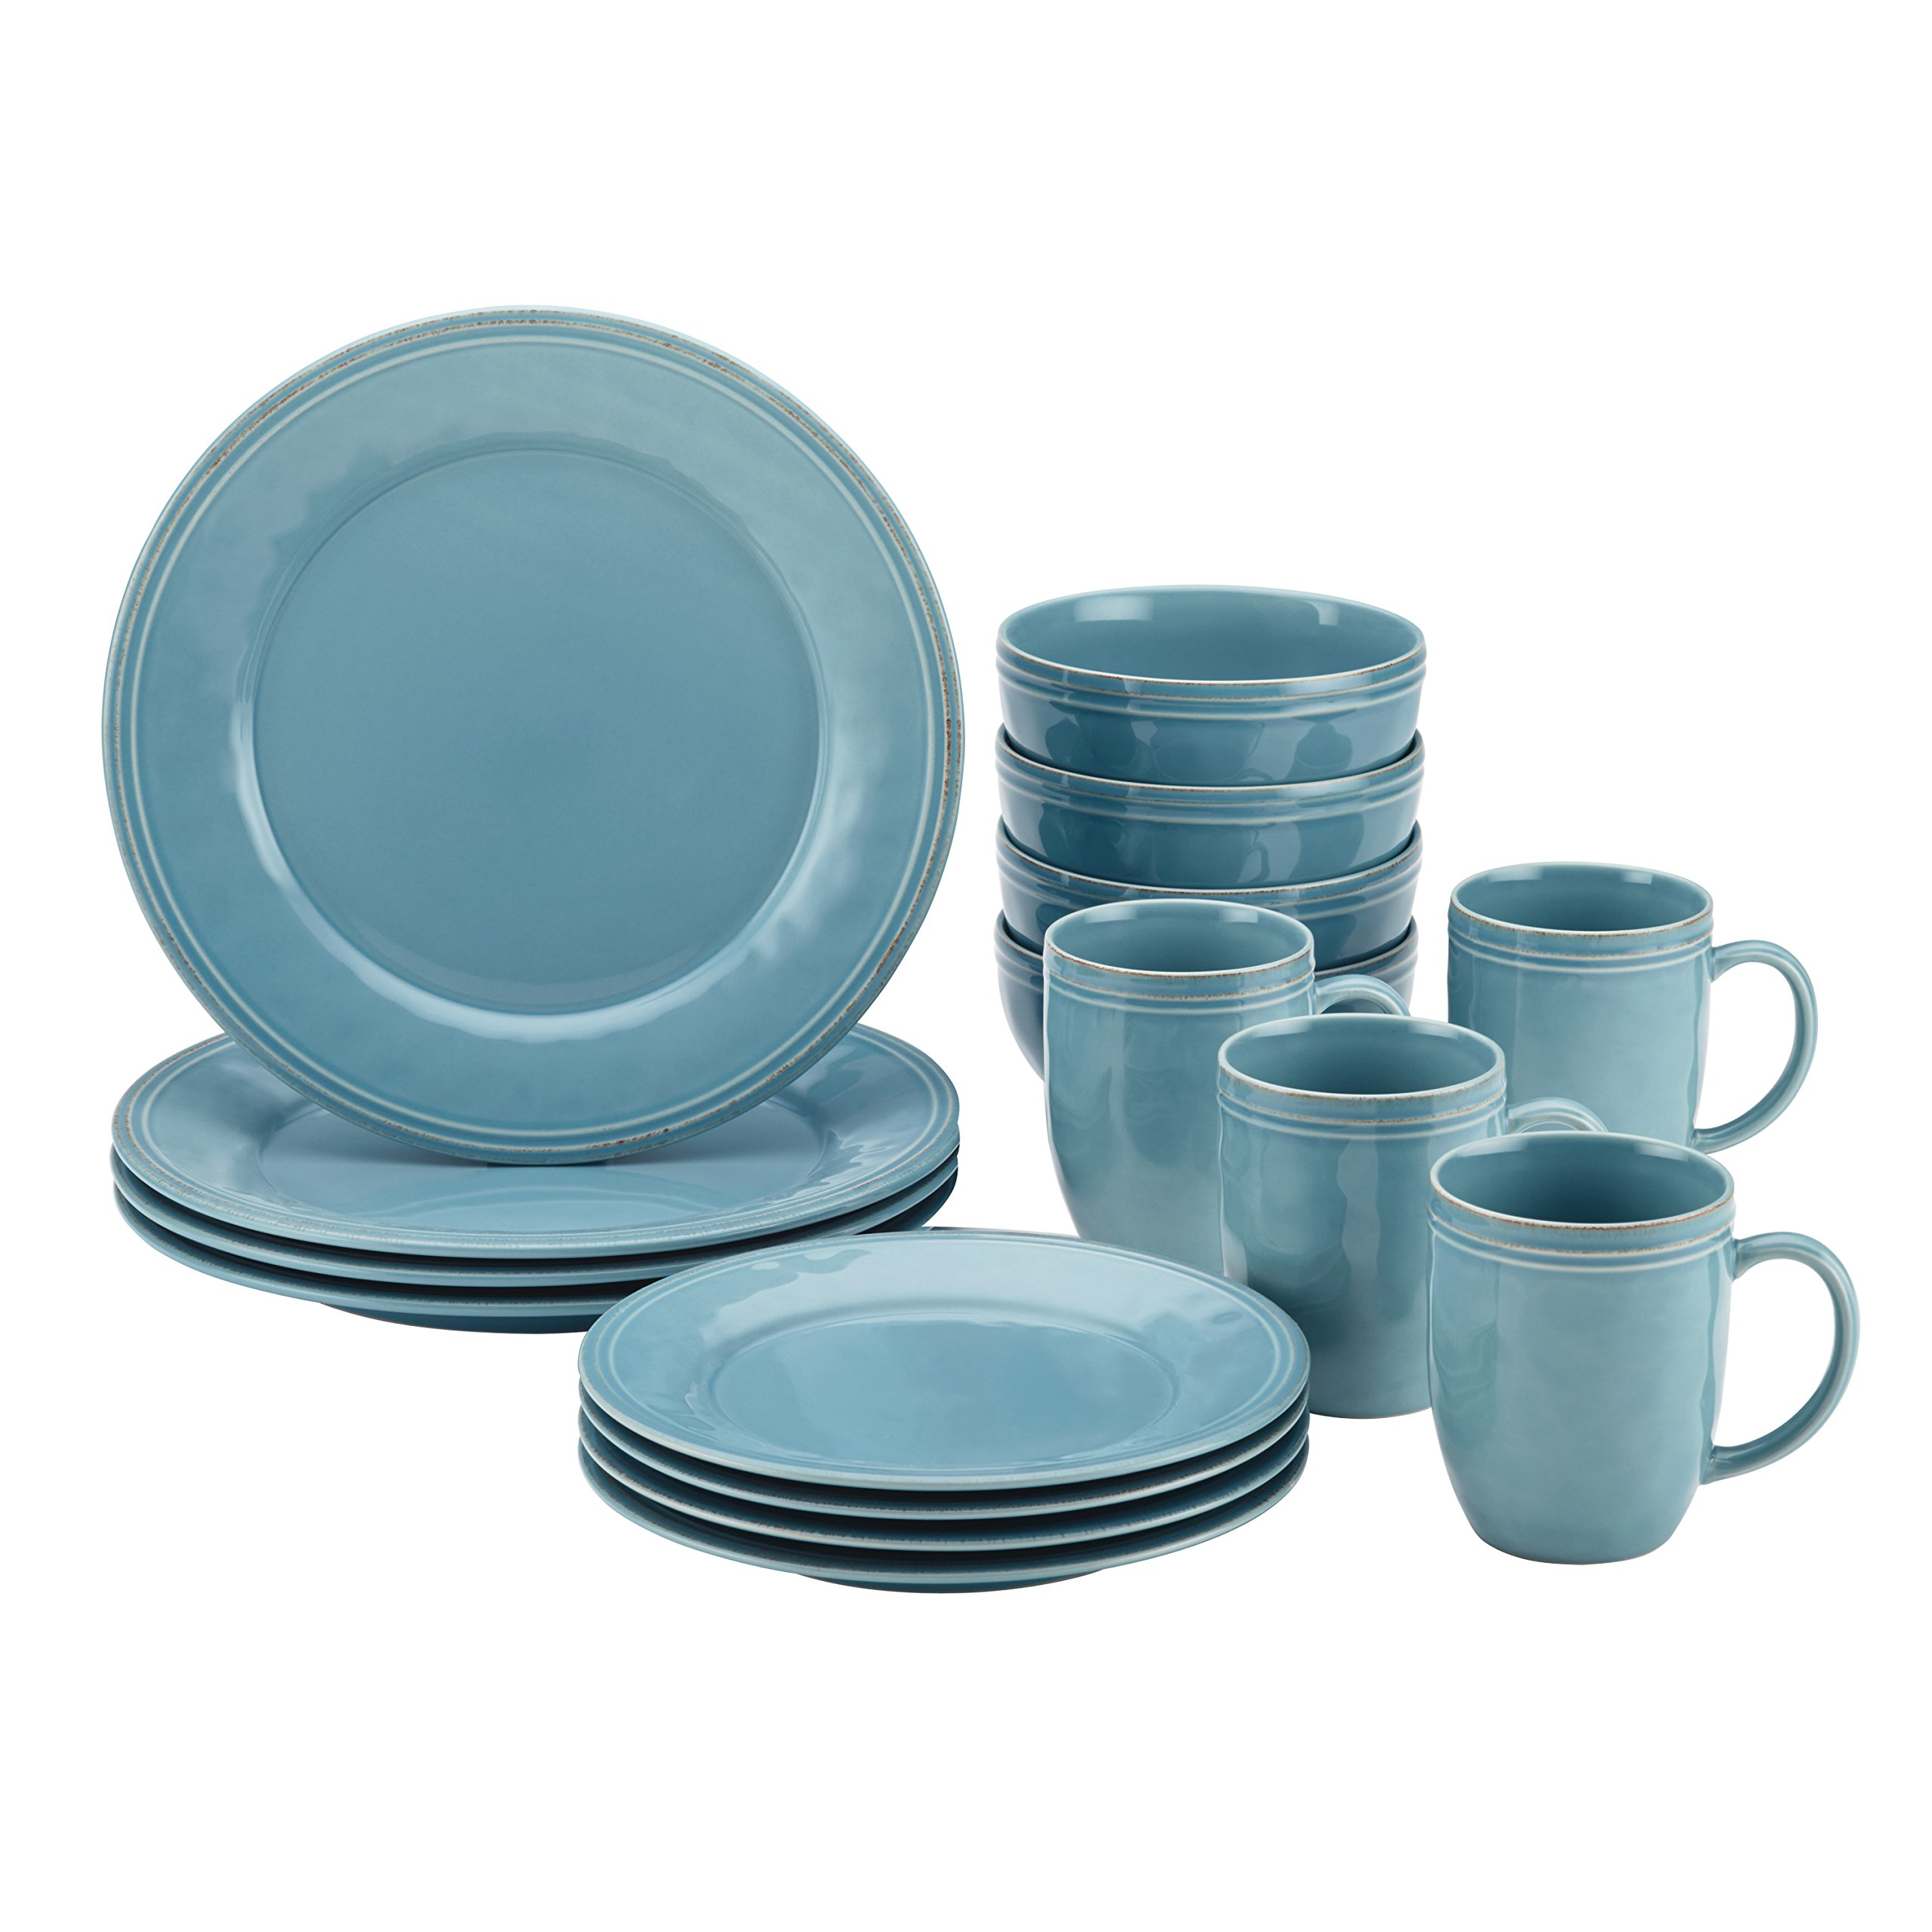 Rachael Ray Cucina Dinnerware 16-Piece Stoneware Dinnerware Set, Agave Blue by Rachael Ray (Image #1)